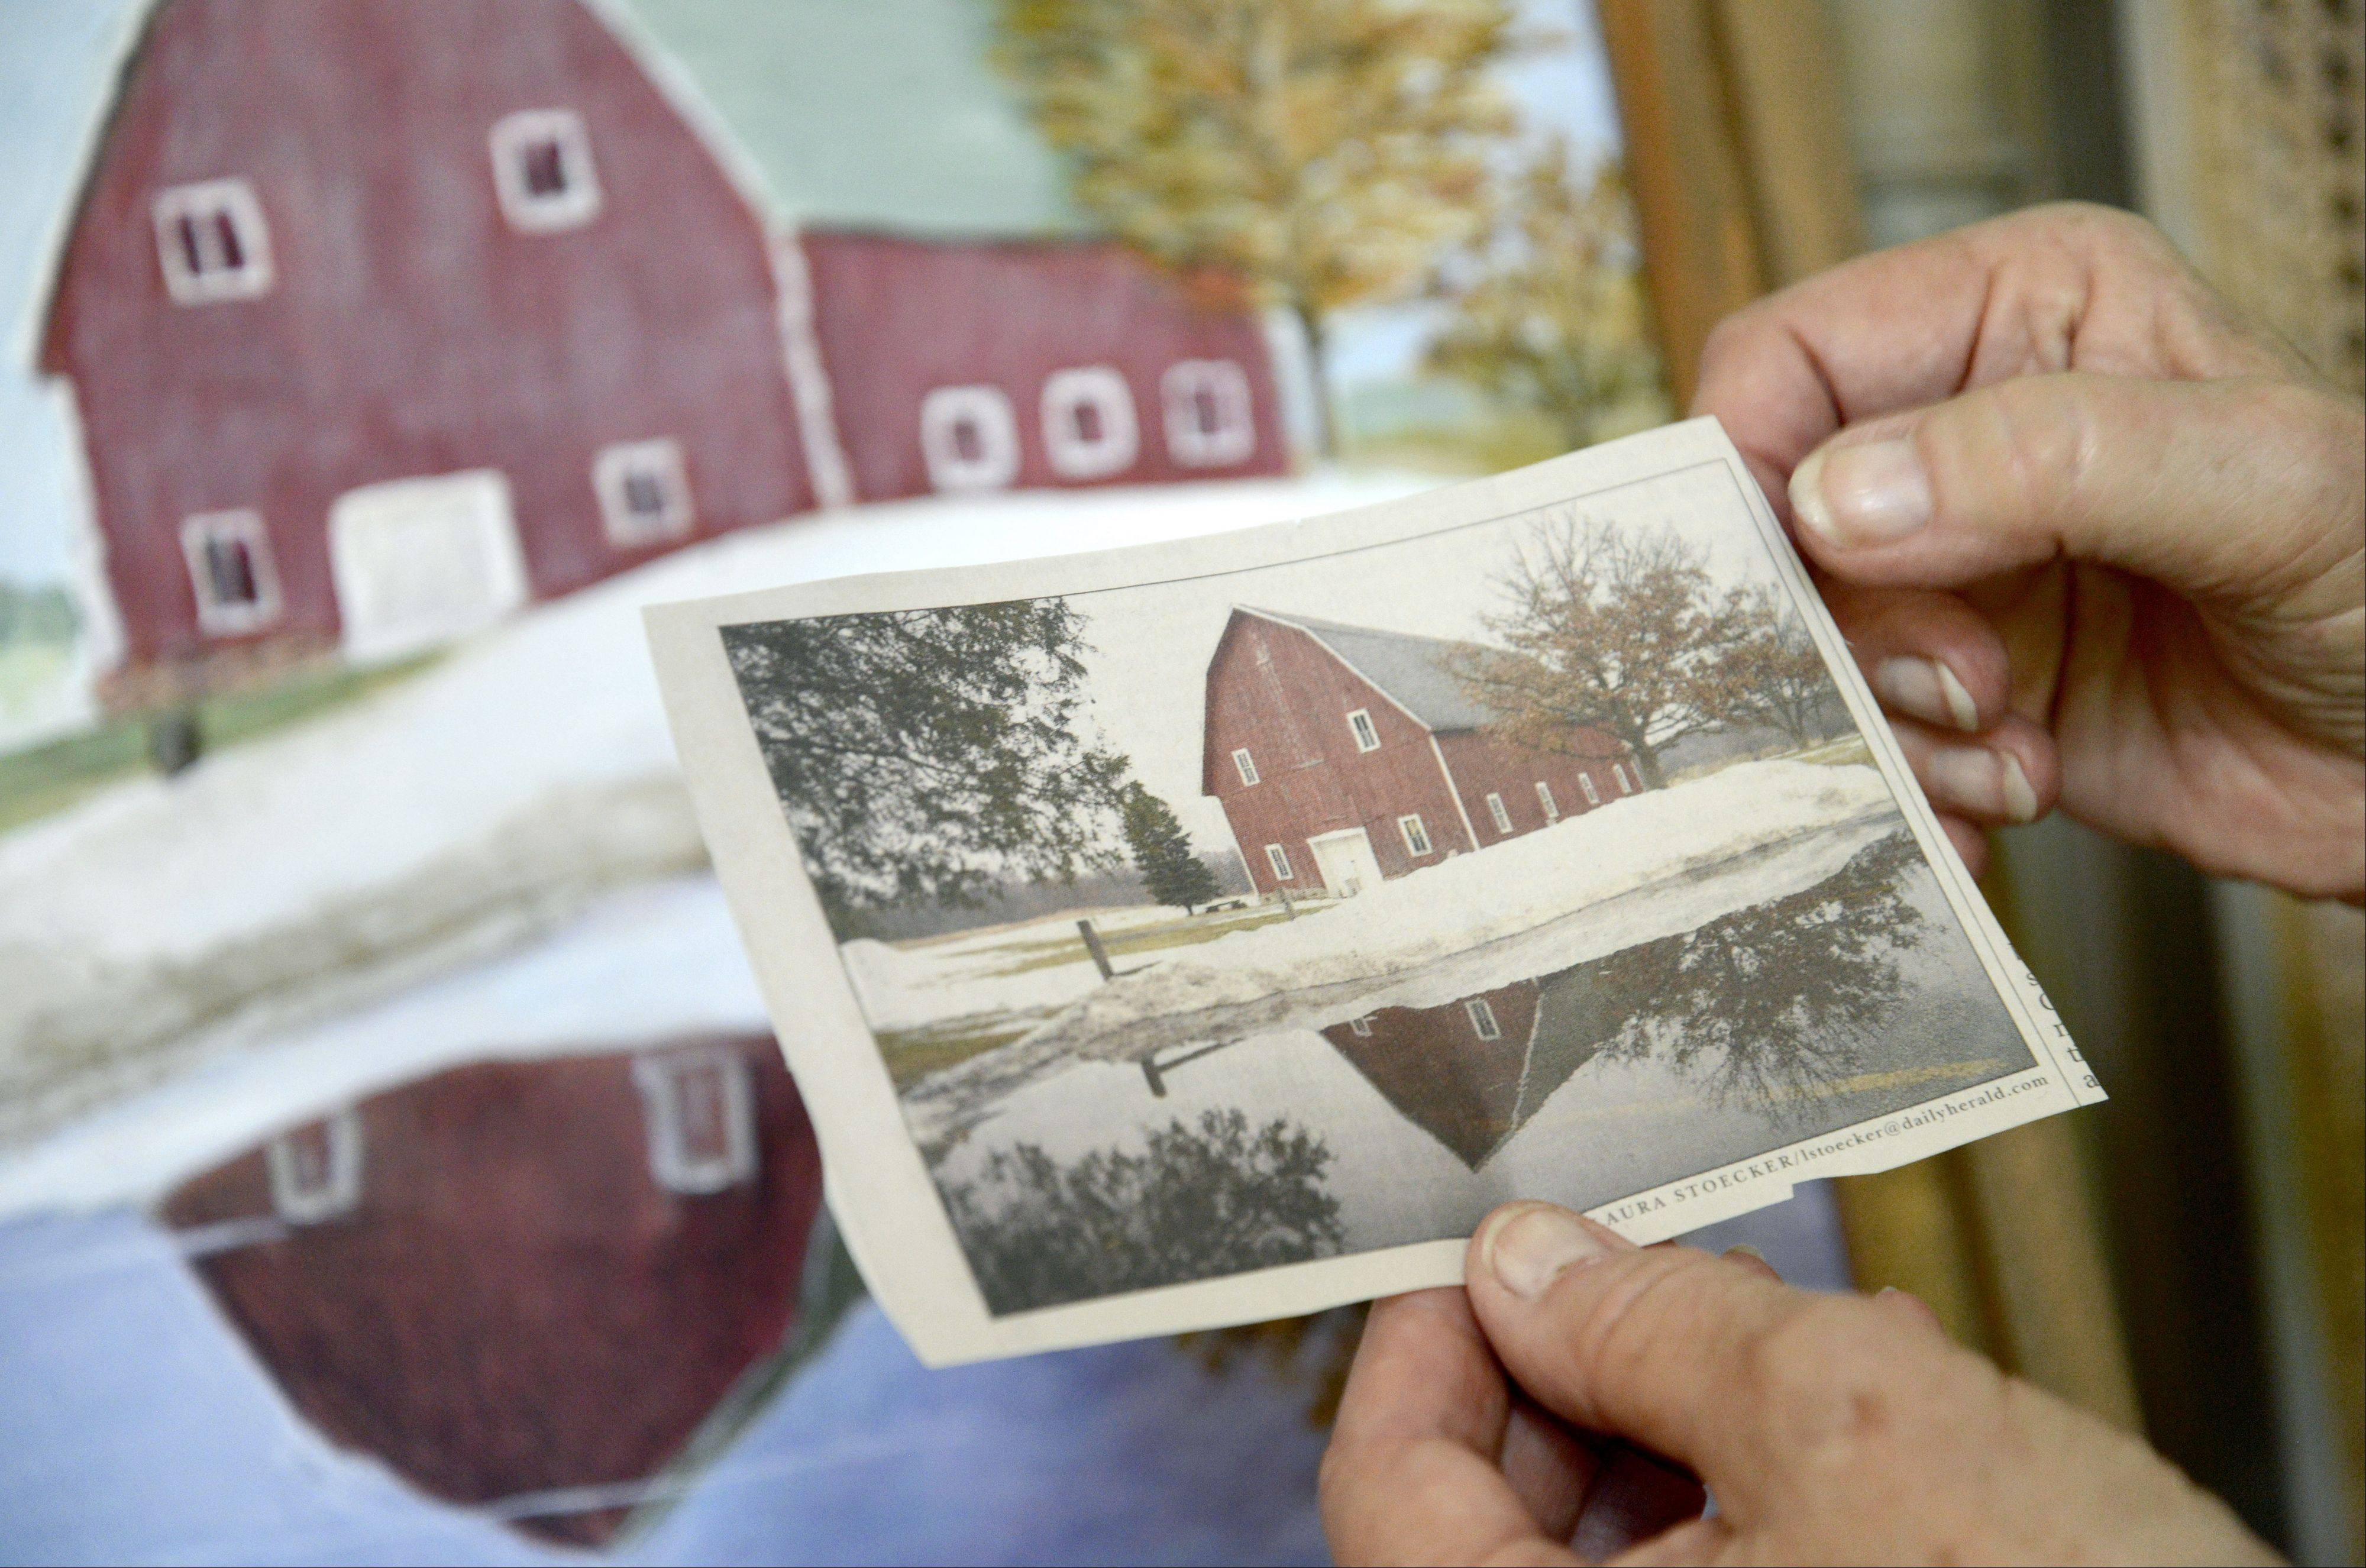 Janine Webbles of Batavia painted the barn at LeRoy Oakes Forest Preserve in St. Charles using a photograph by Daily Herald staff photographer, Laura Stoecker, as a guide.